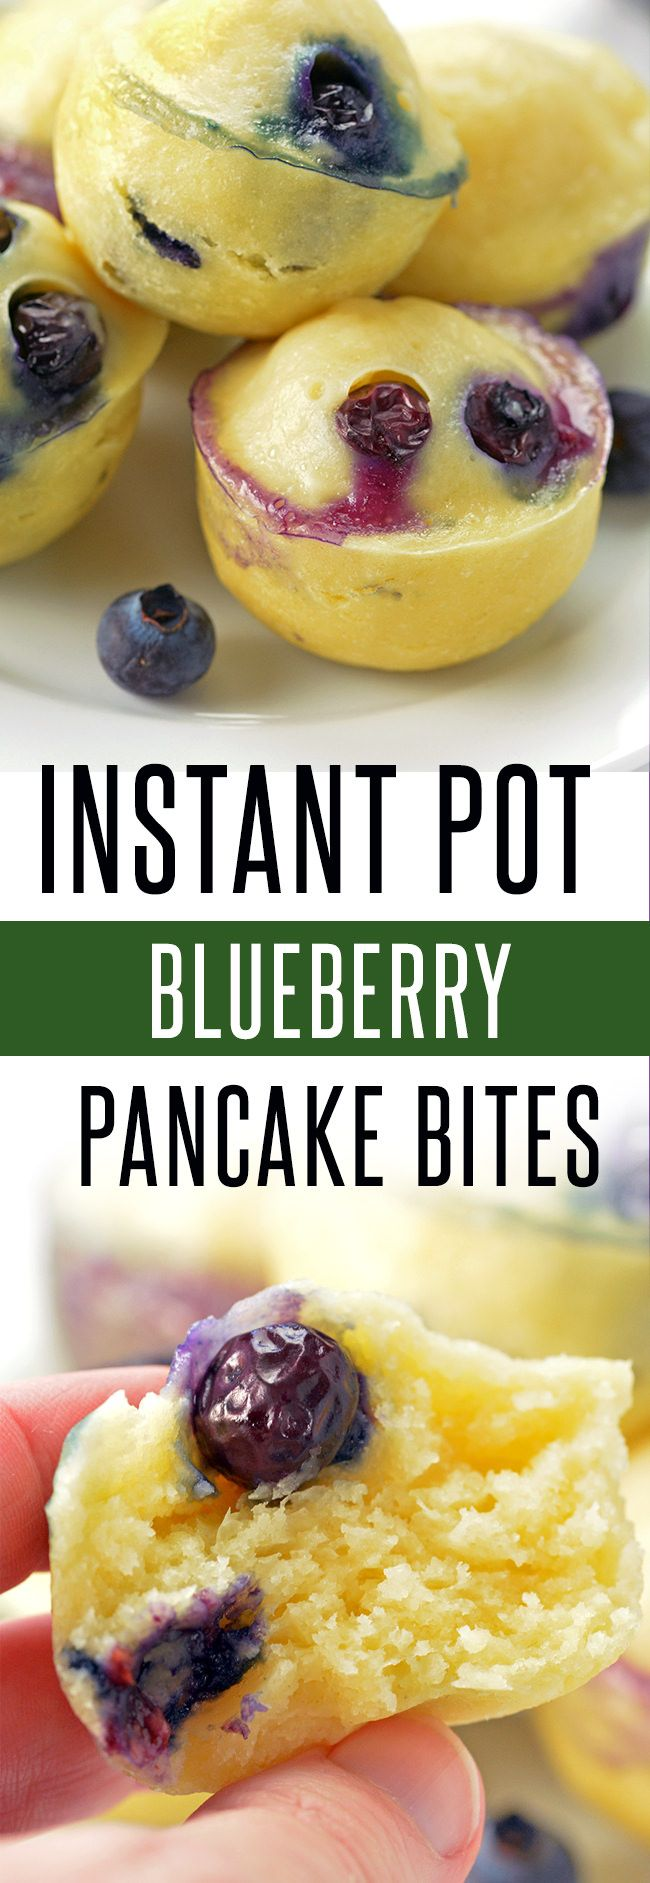 Homemade Pancakes in the Instant Pot! This Instant Pot Recipe can be adapted to your liking! Ready to serve in under 10 minutes! Click for more Instant Pot recipes at foodieandwine.com #breakfastrecipes #pancakerecipes #instantpotrecipes